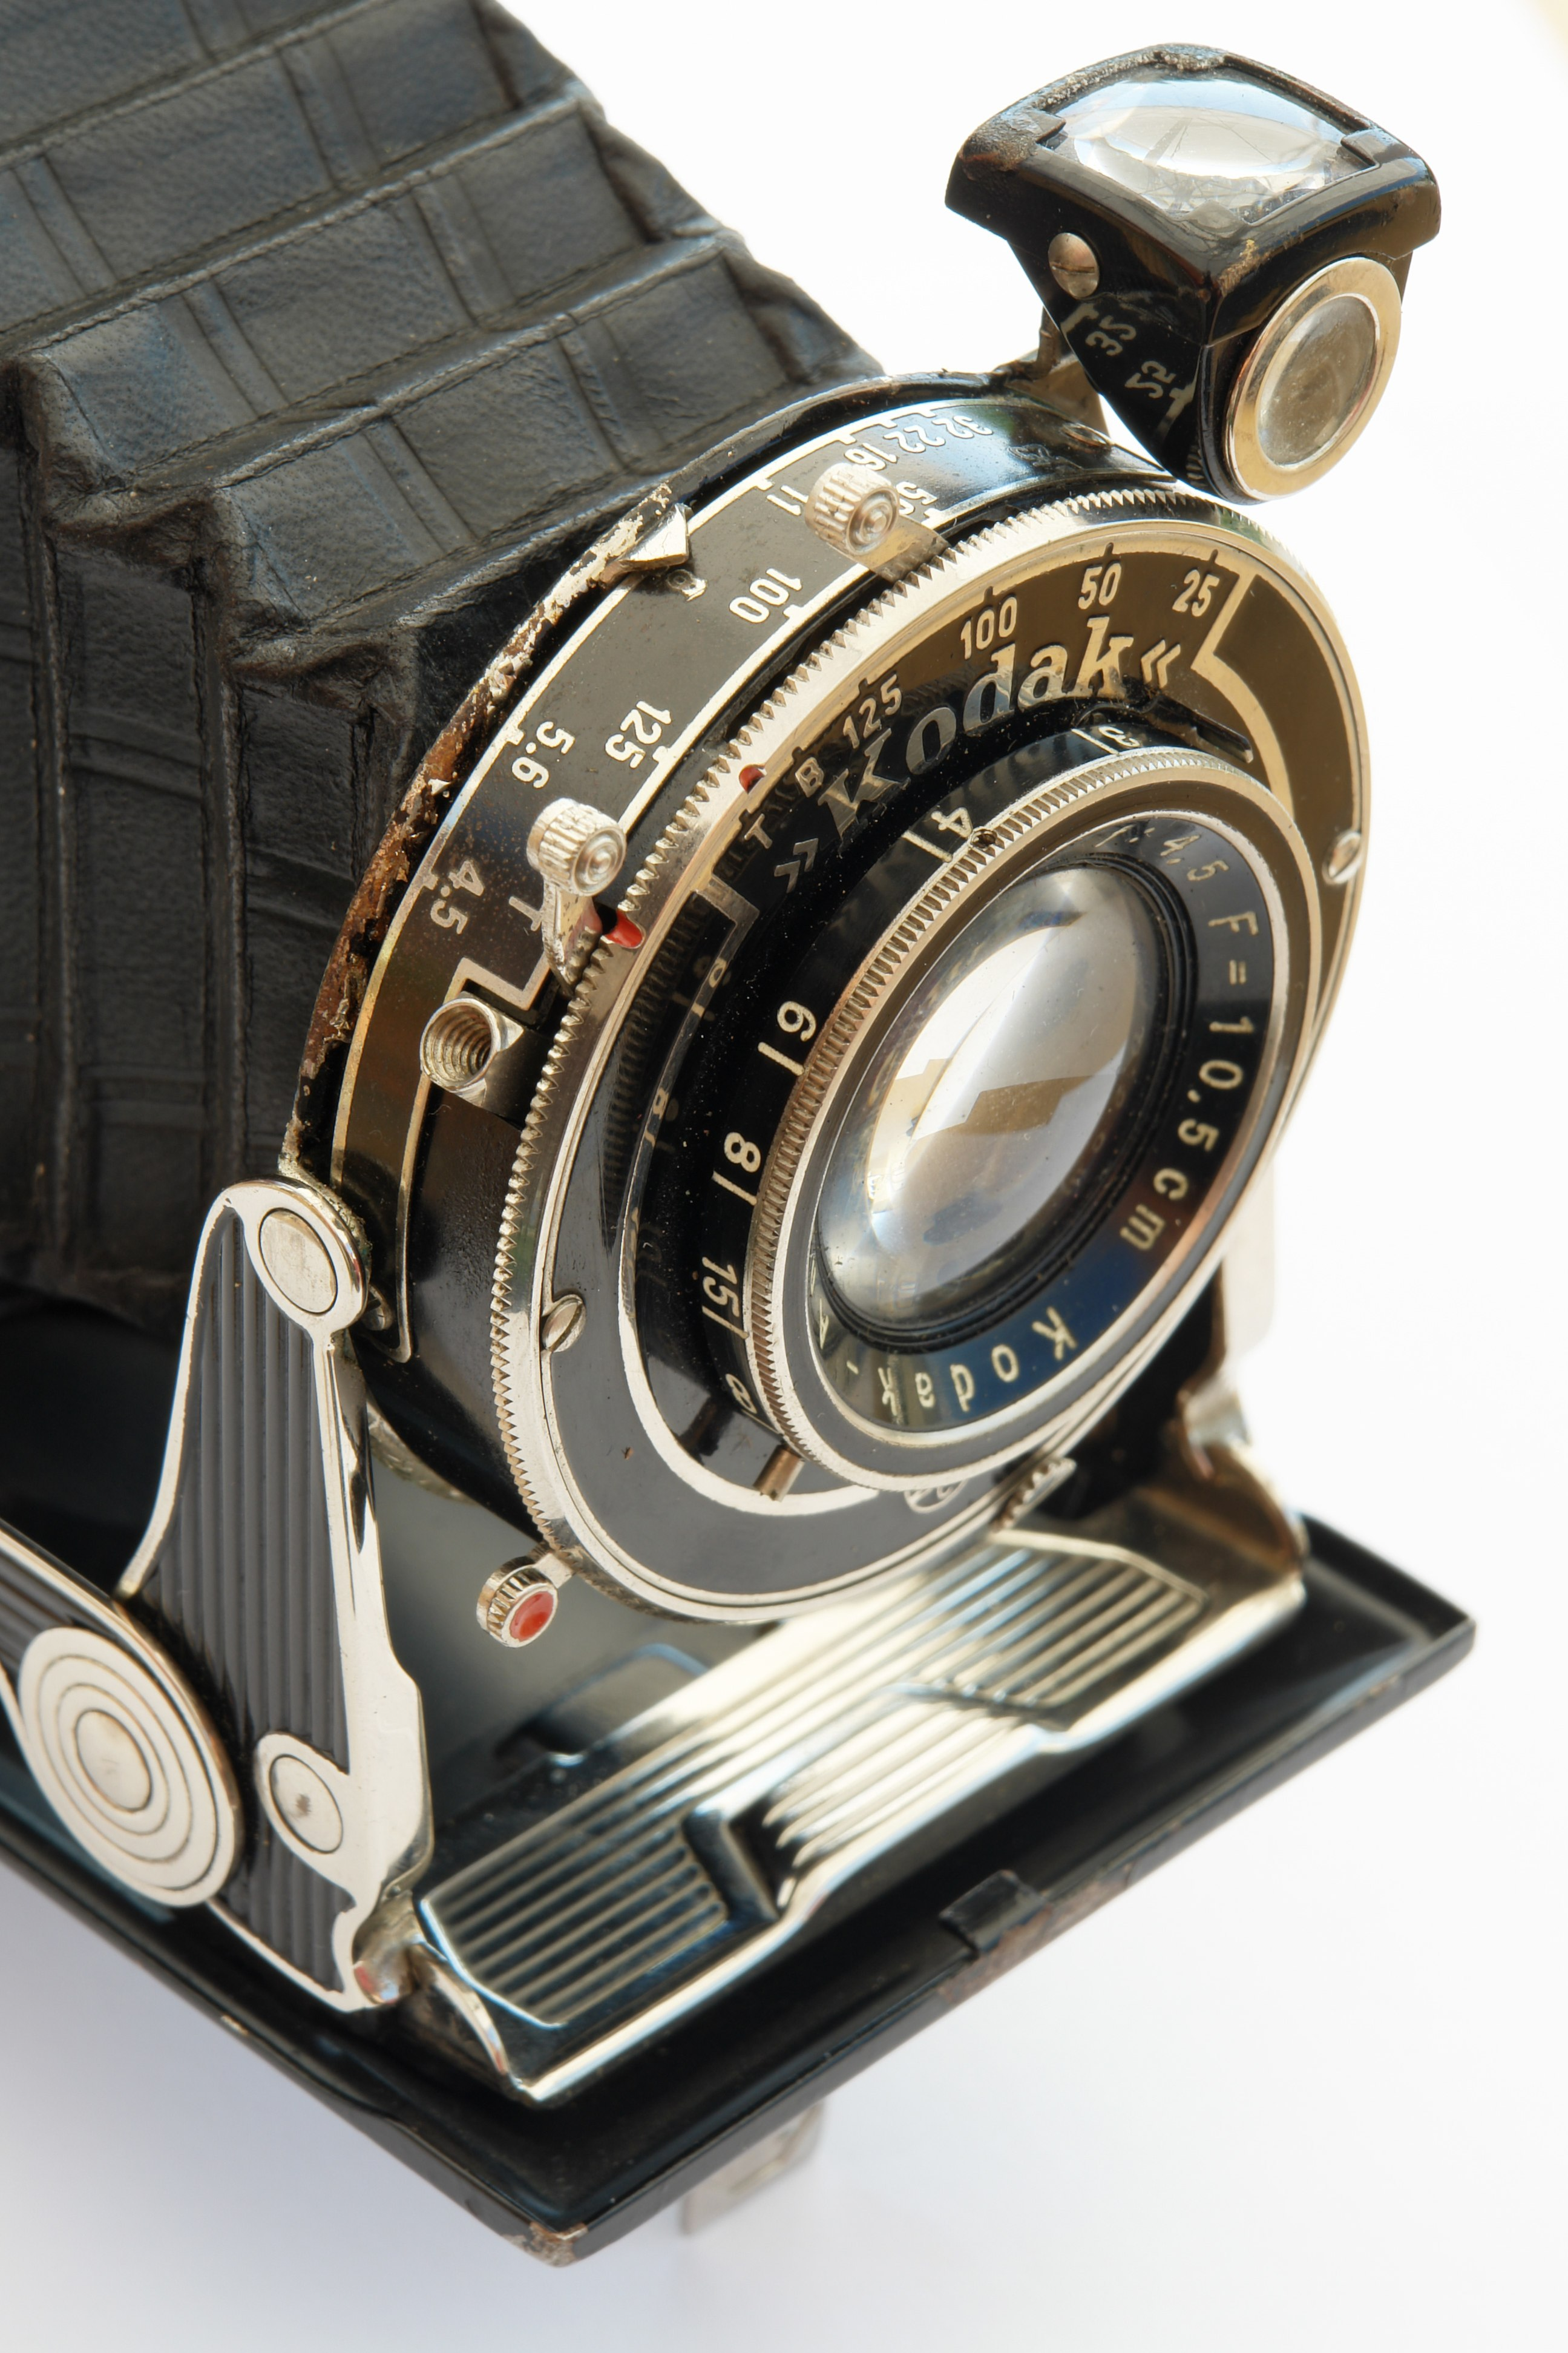 List of products manufactured by Kodak - The complete information